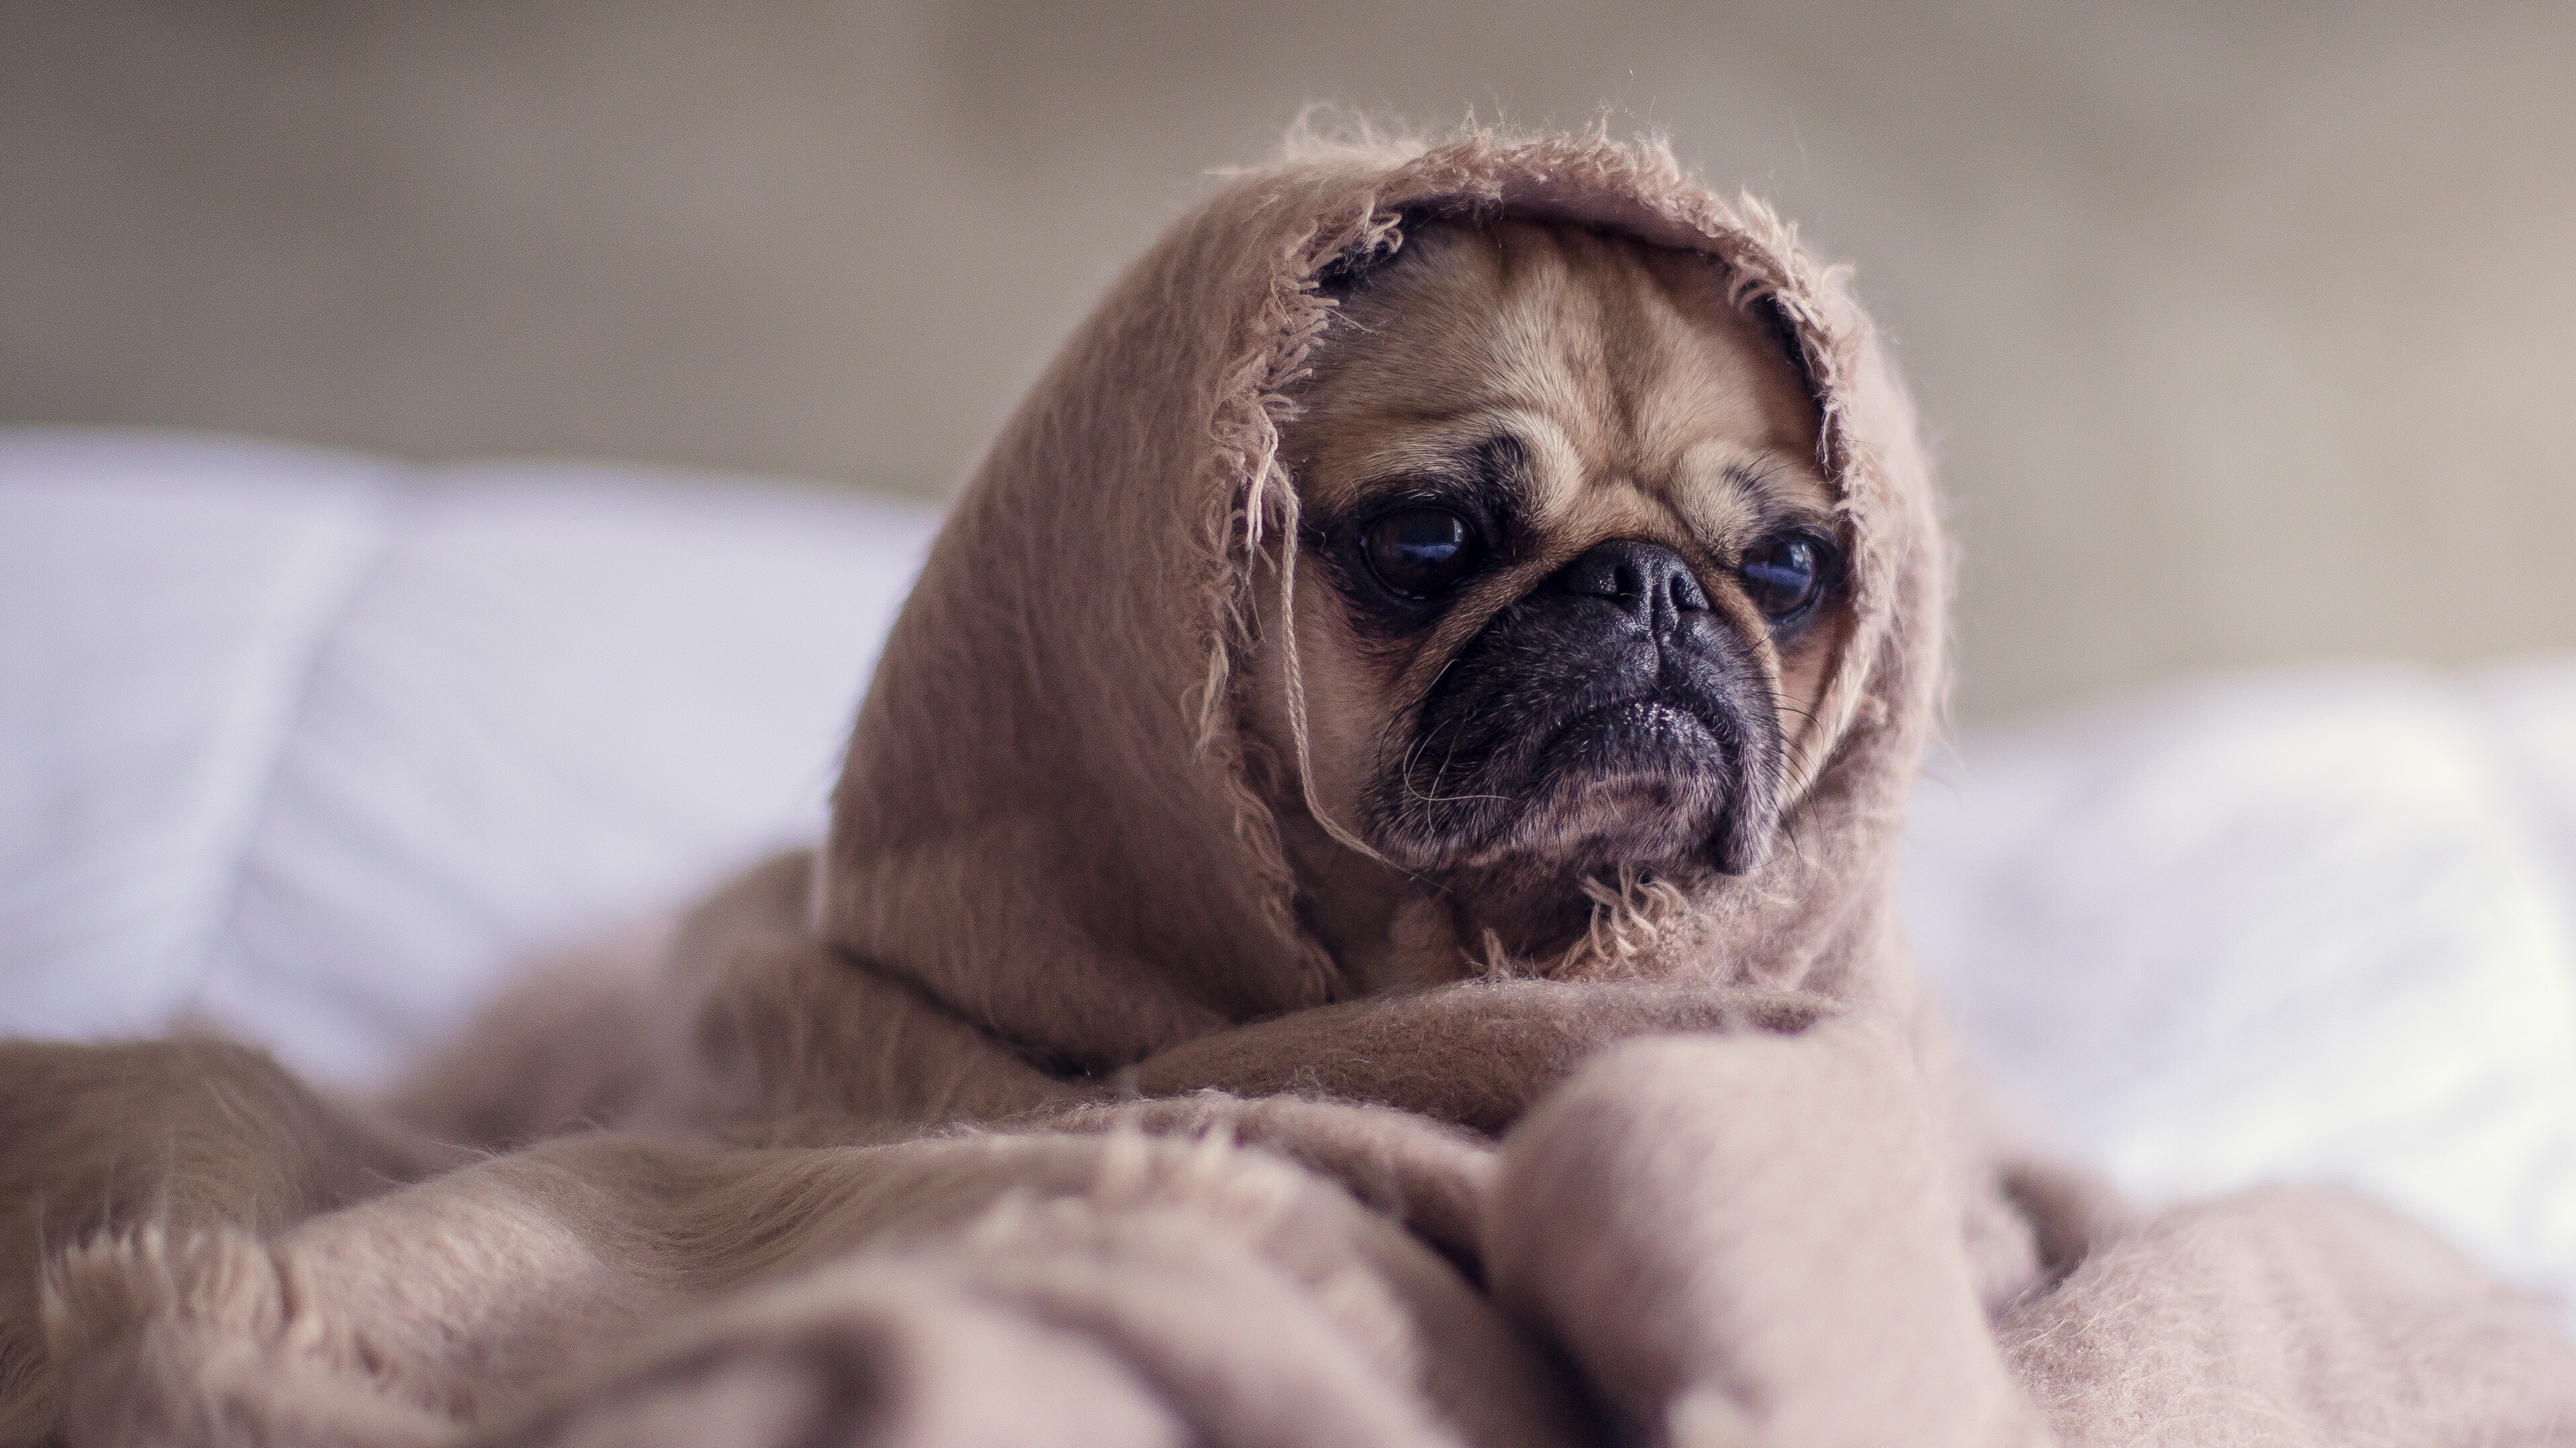 Funny Dog Puppy Wrapped in Blanket 4K Wallpaper | HD ...